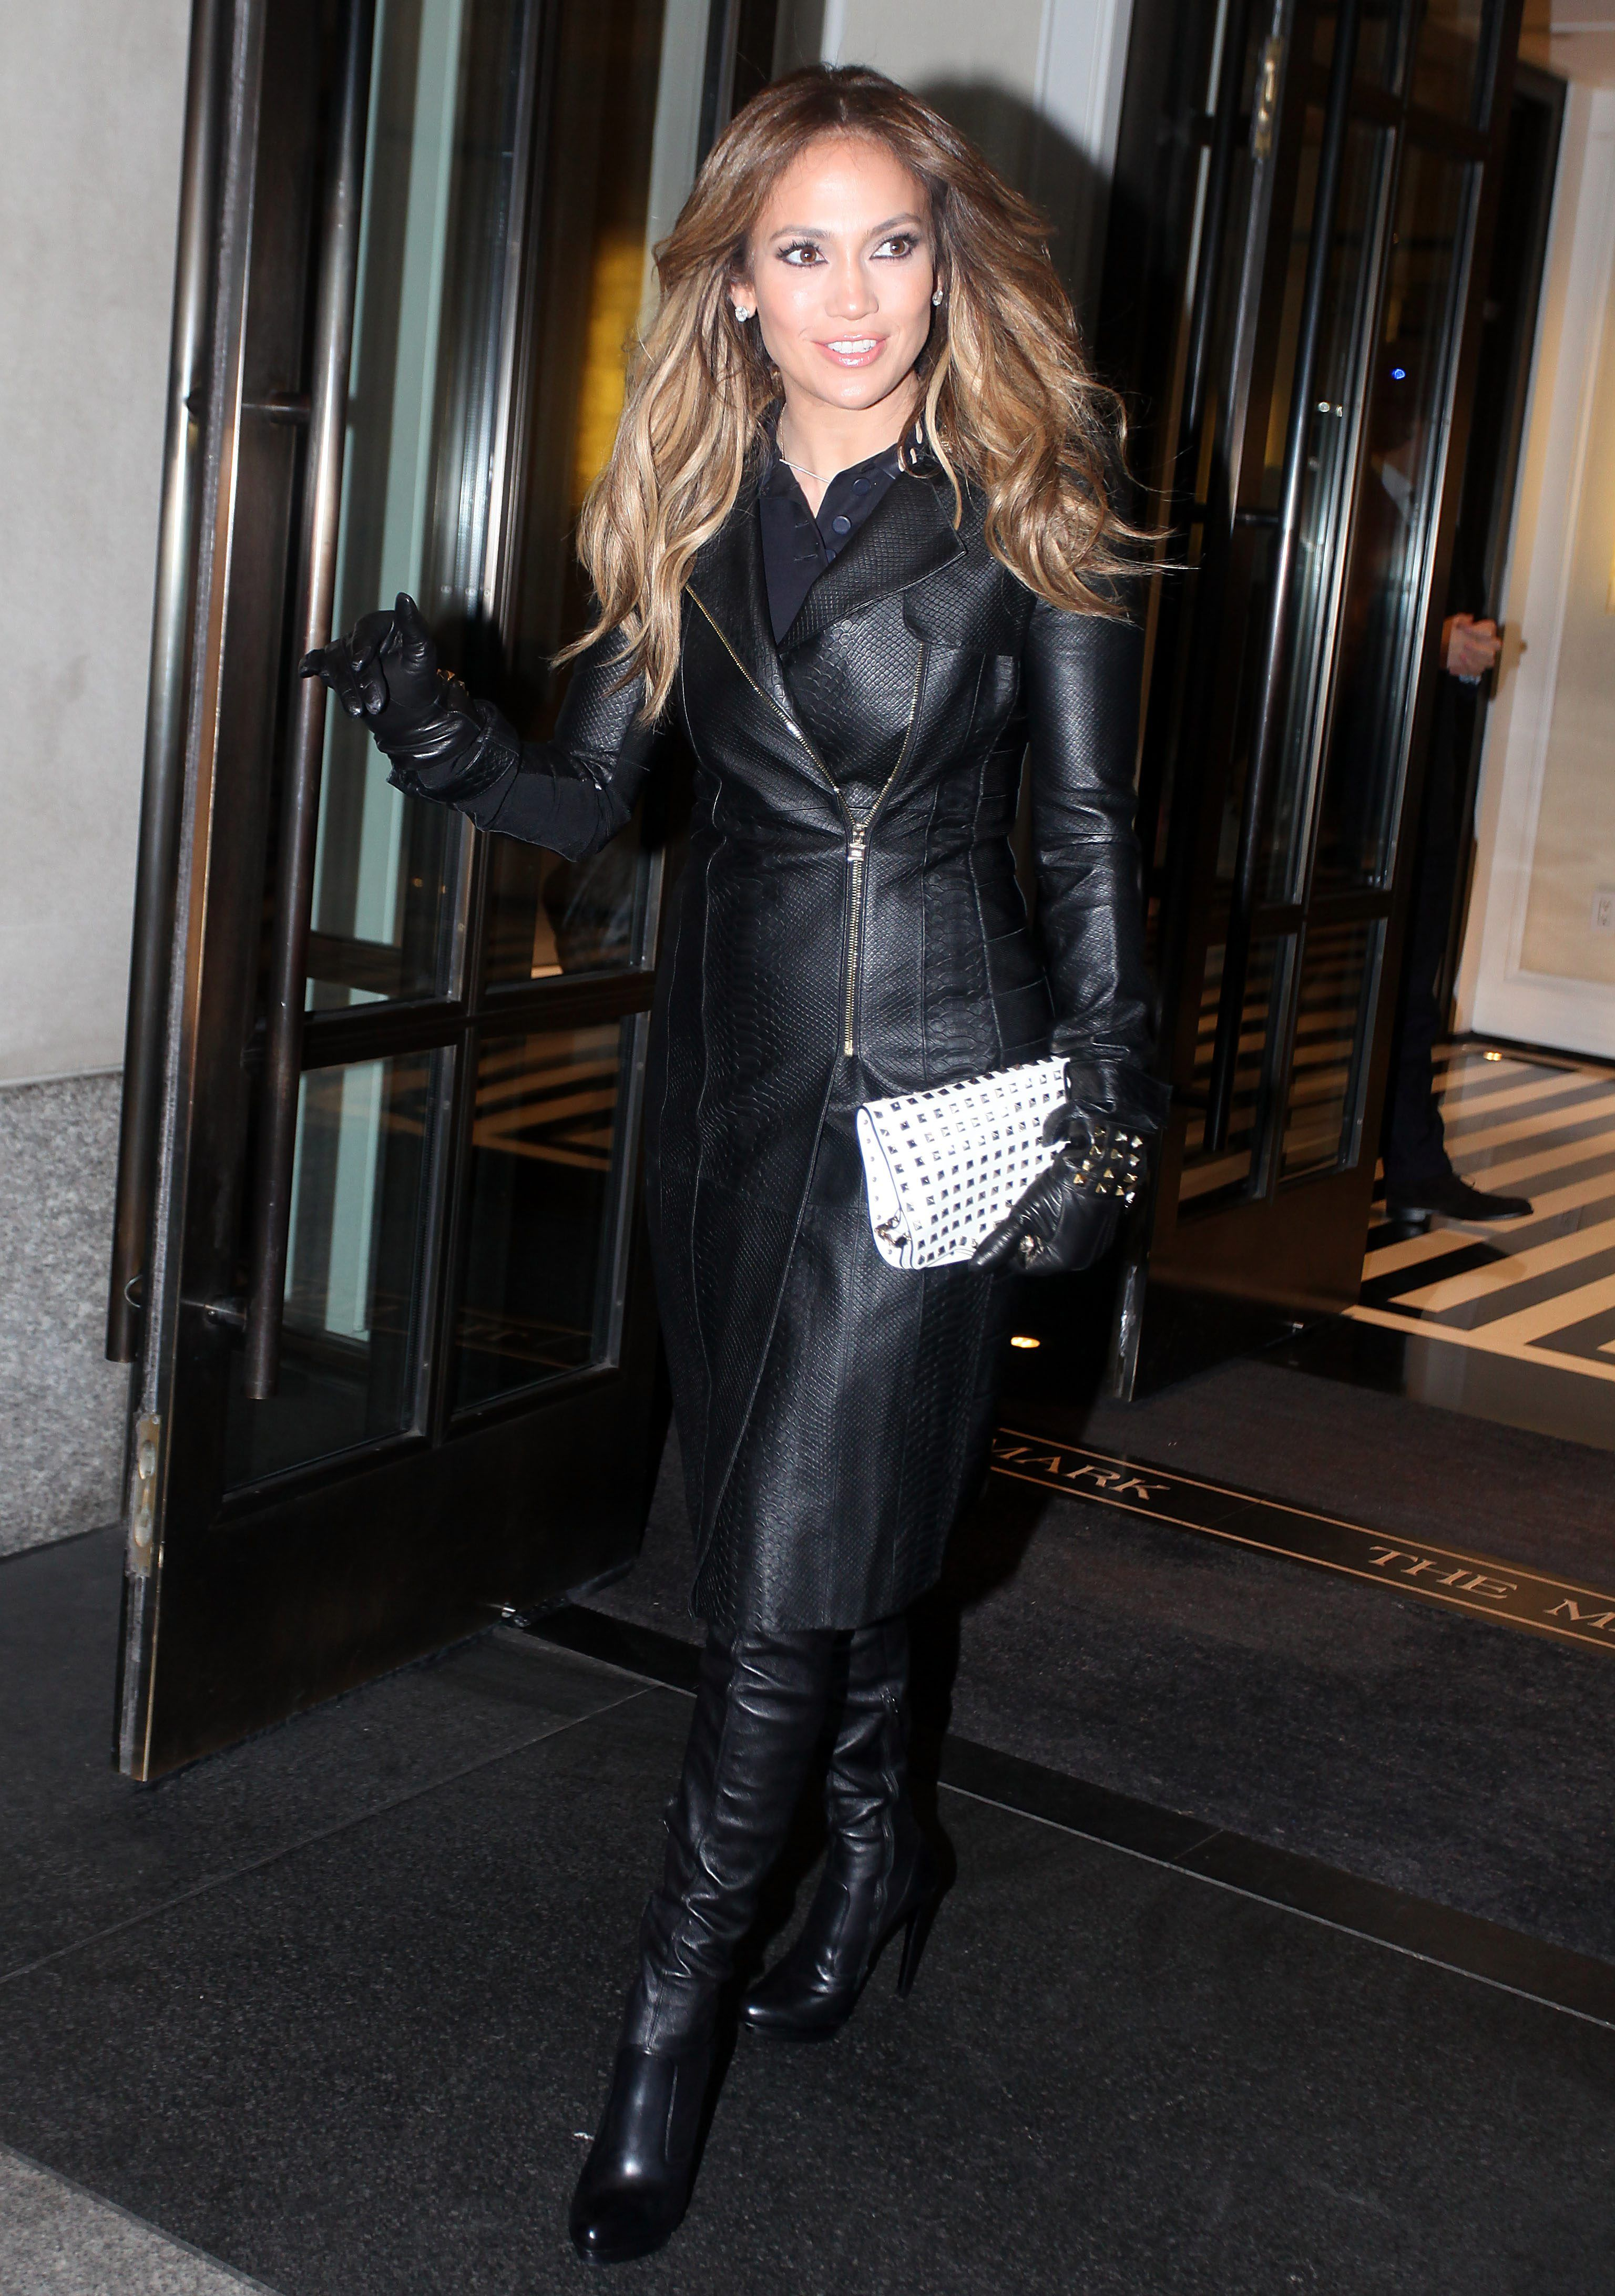 Ladies in leather gloves and boots - Celebrities In Boots Gloves Jennifer Lopez In Valentino Leather Gloves And Over The Knee Boots New York City